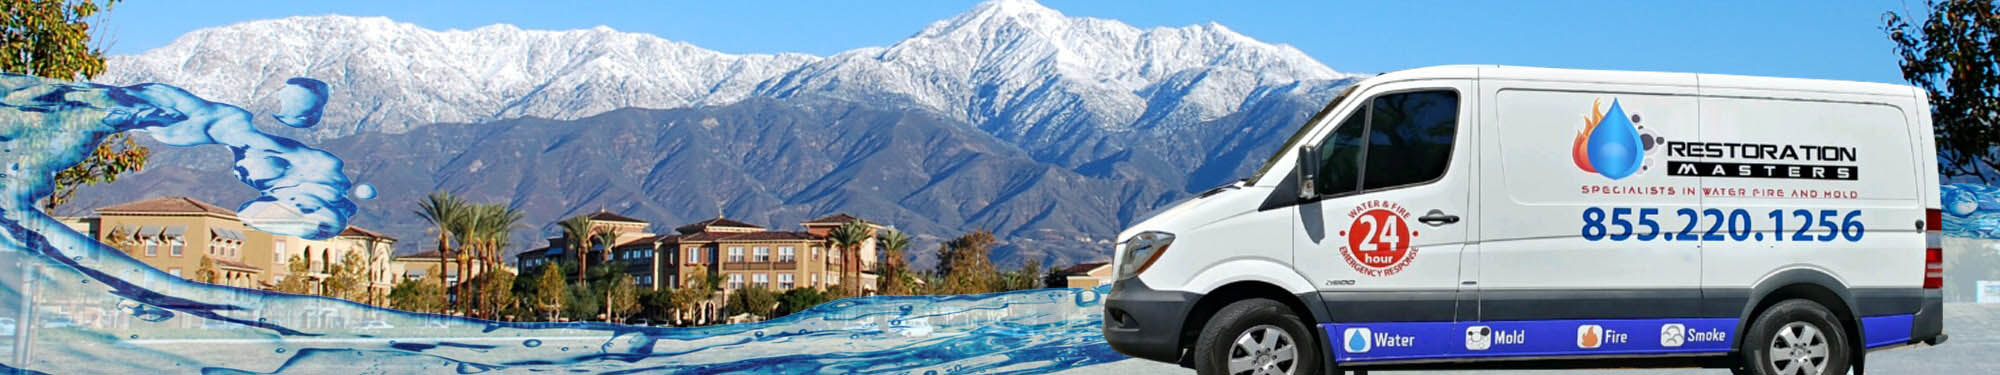 Rancho Cucamonga Water Restoration Services